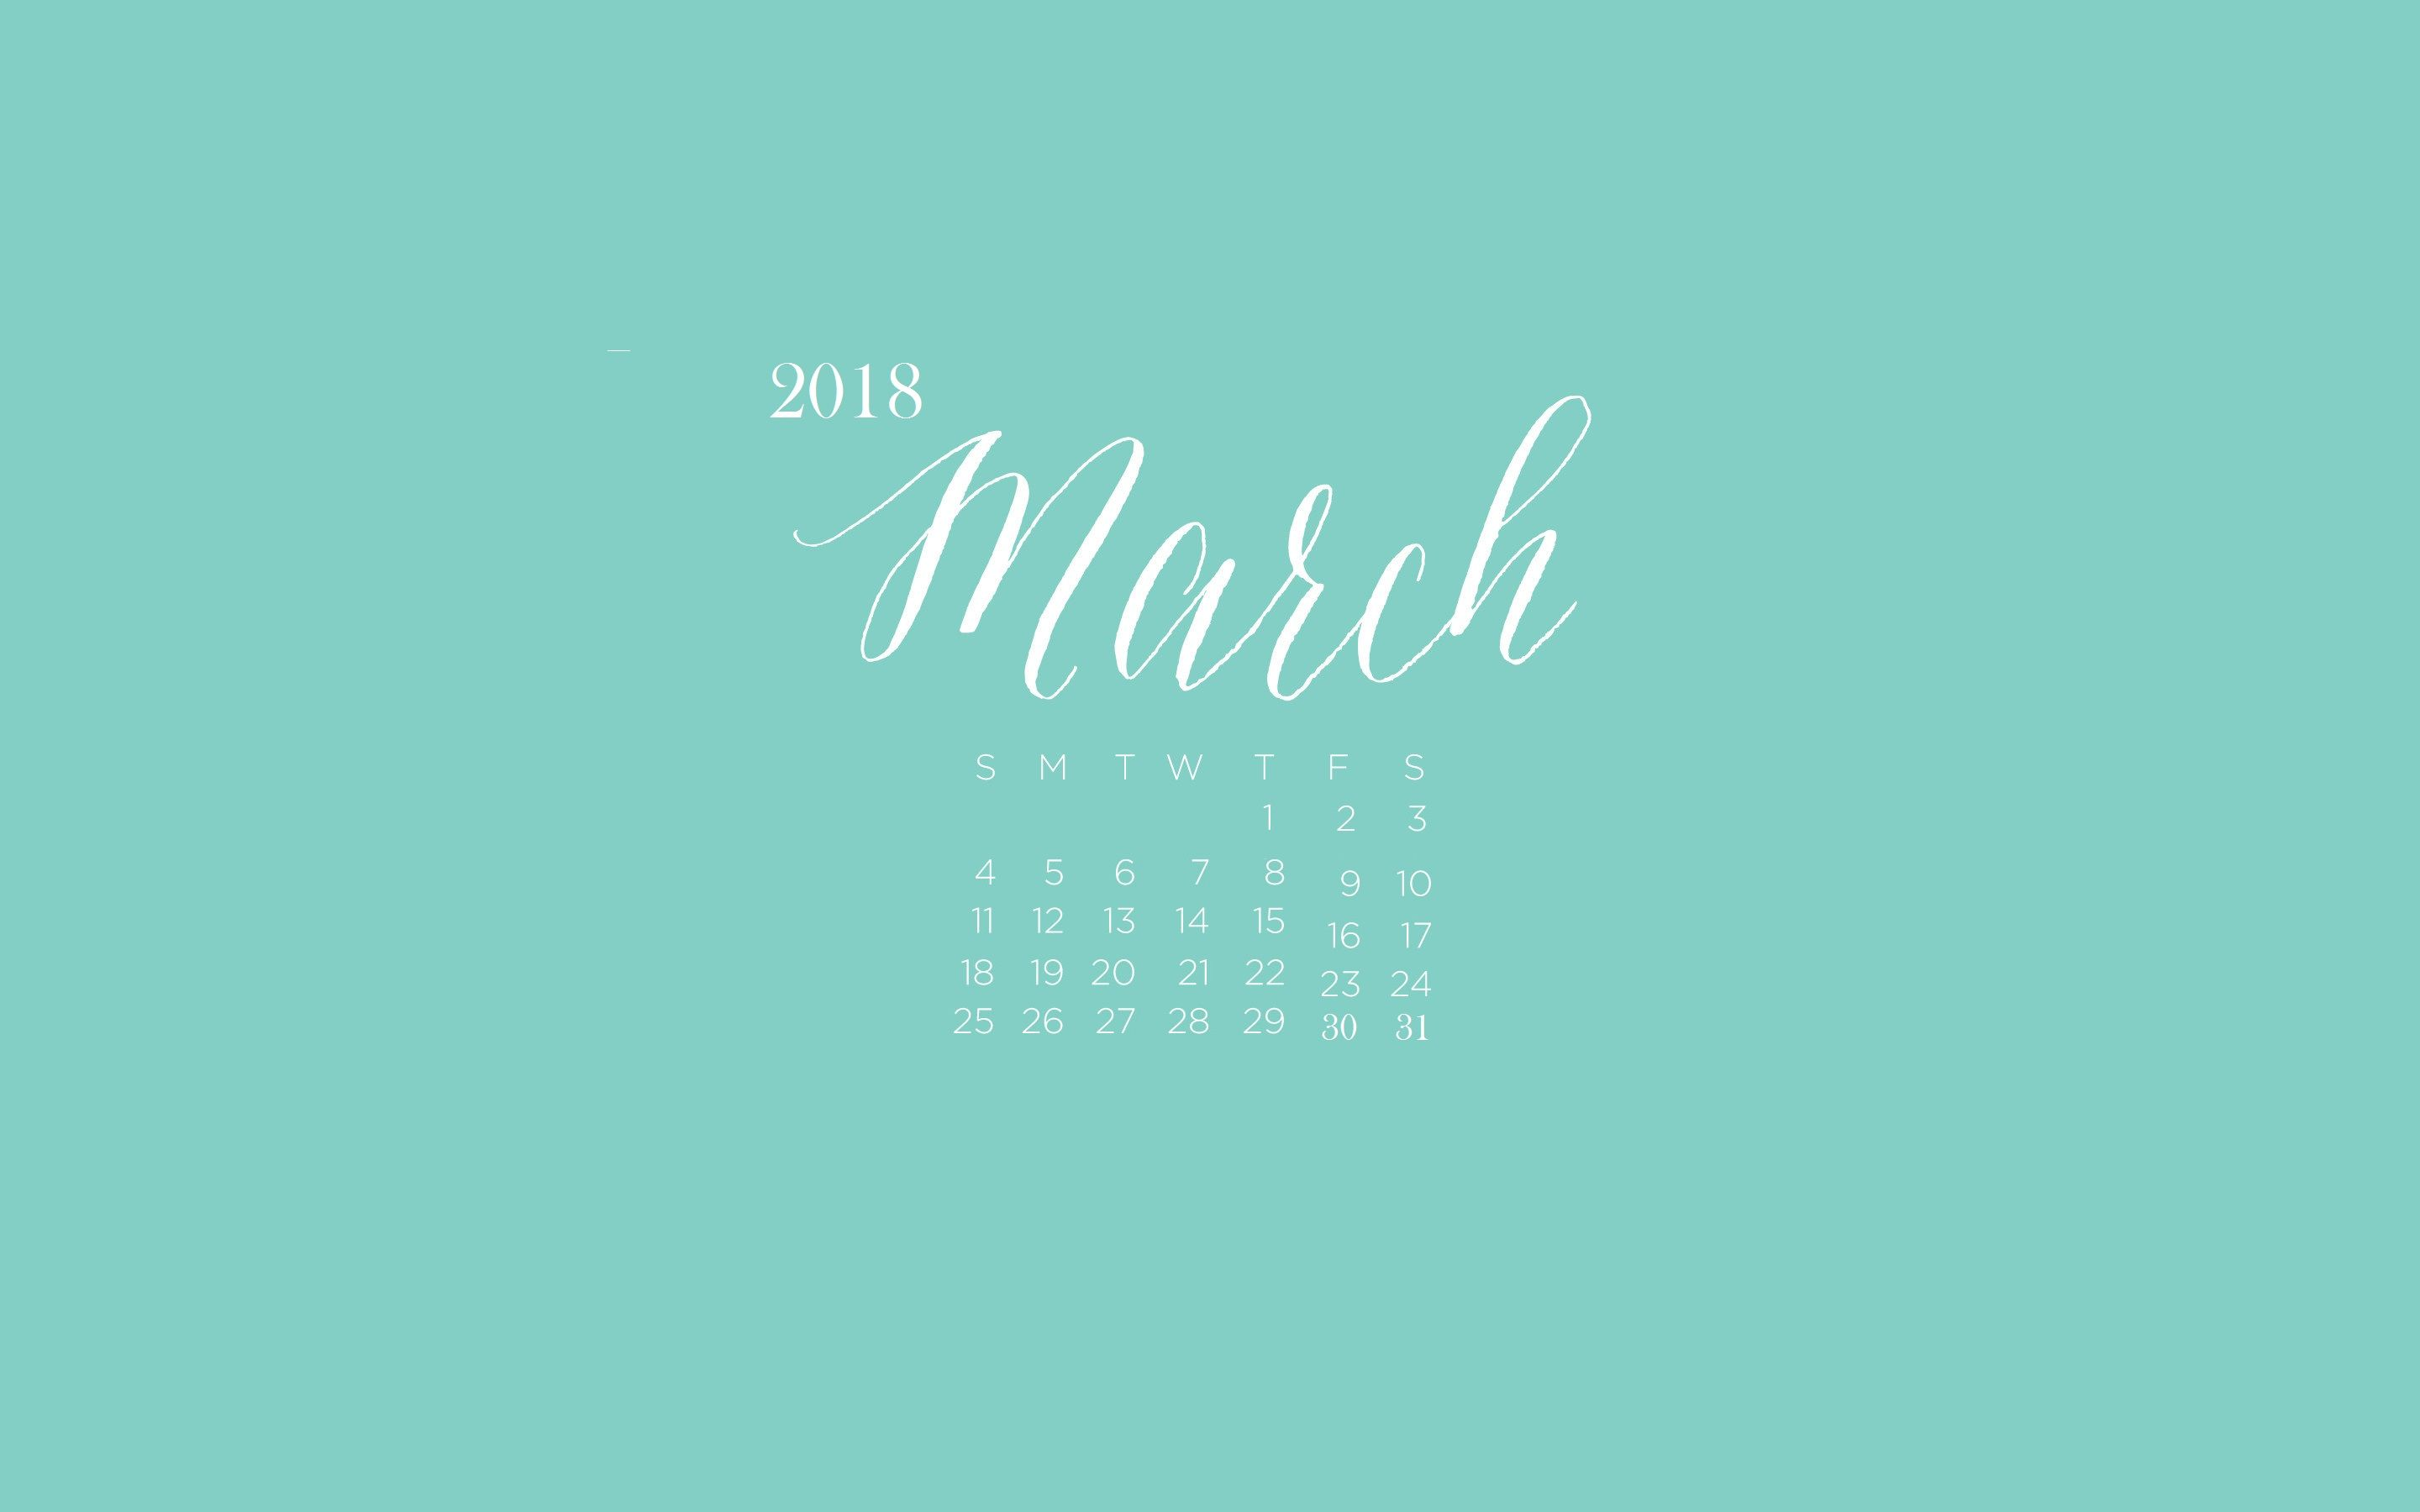 March 2018 Desktop Calendar Wallpaper Maxcalendars